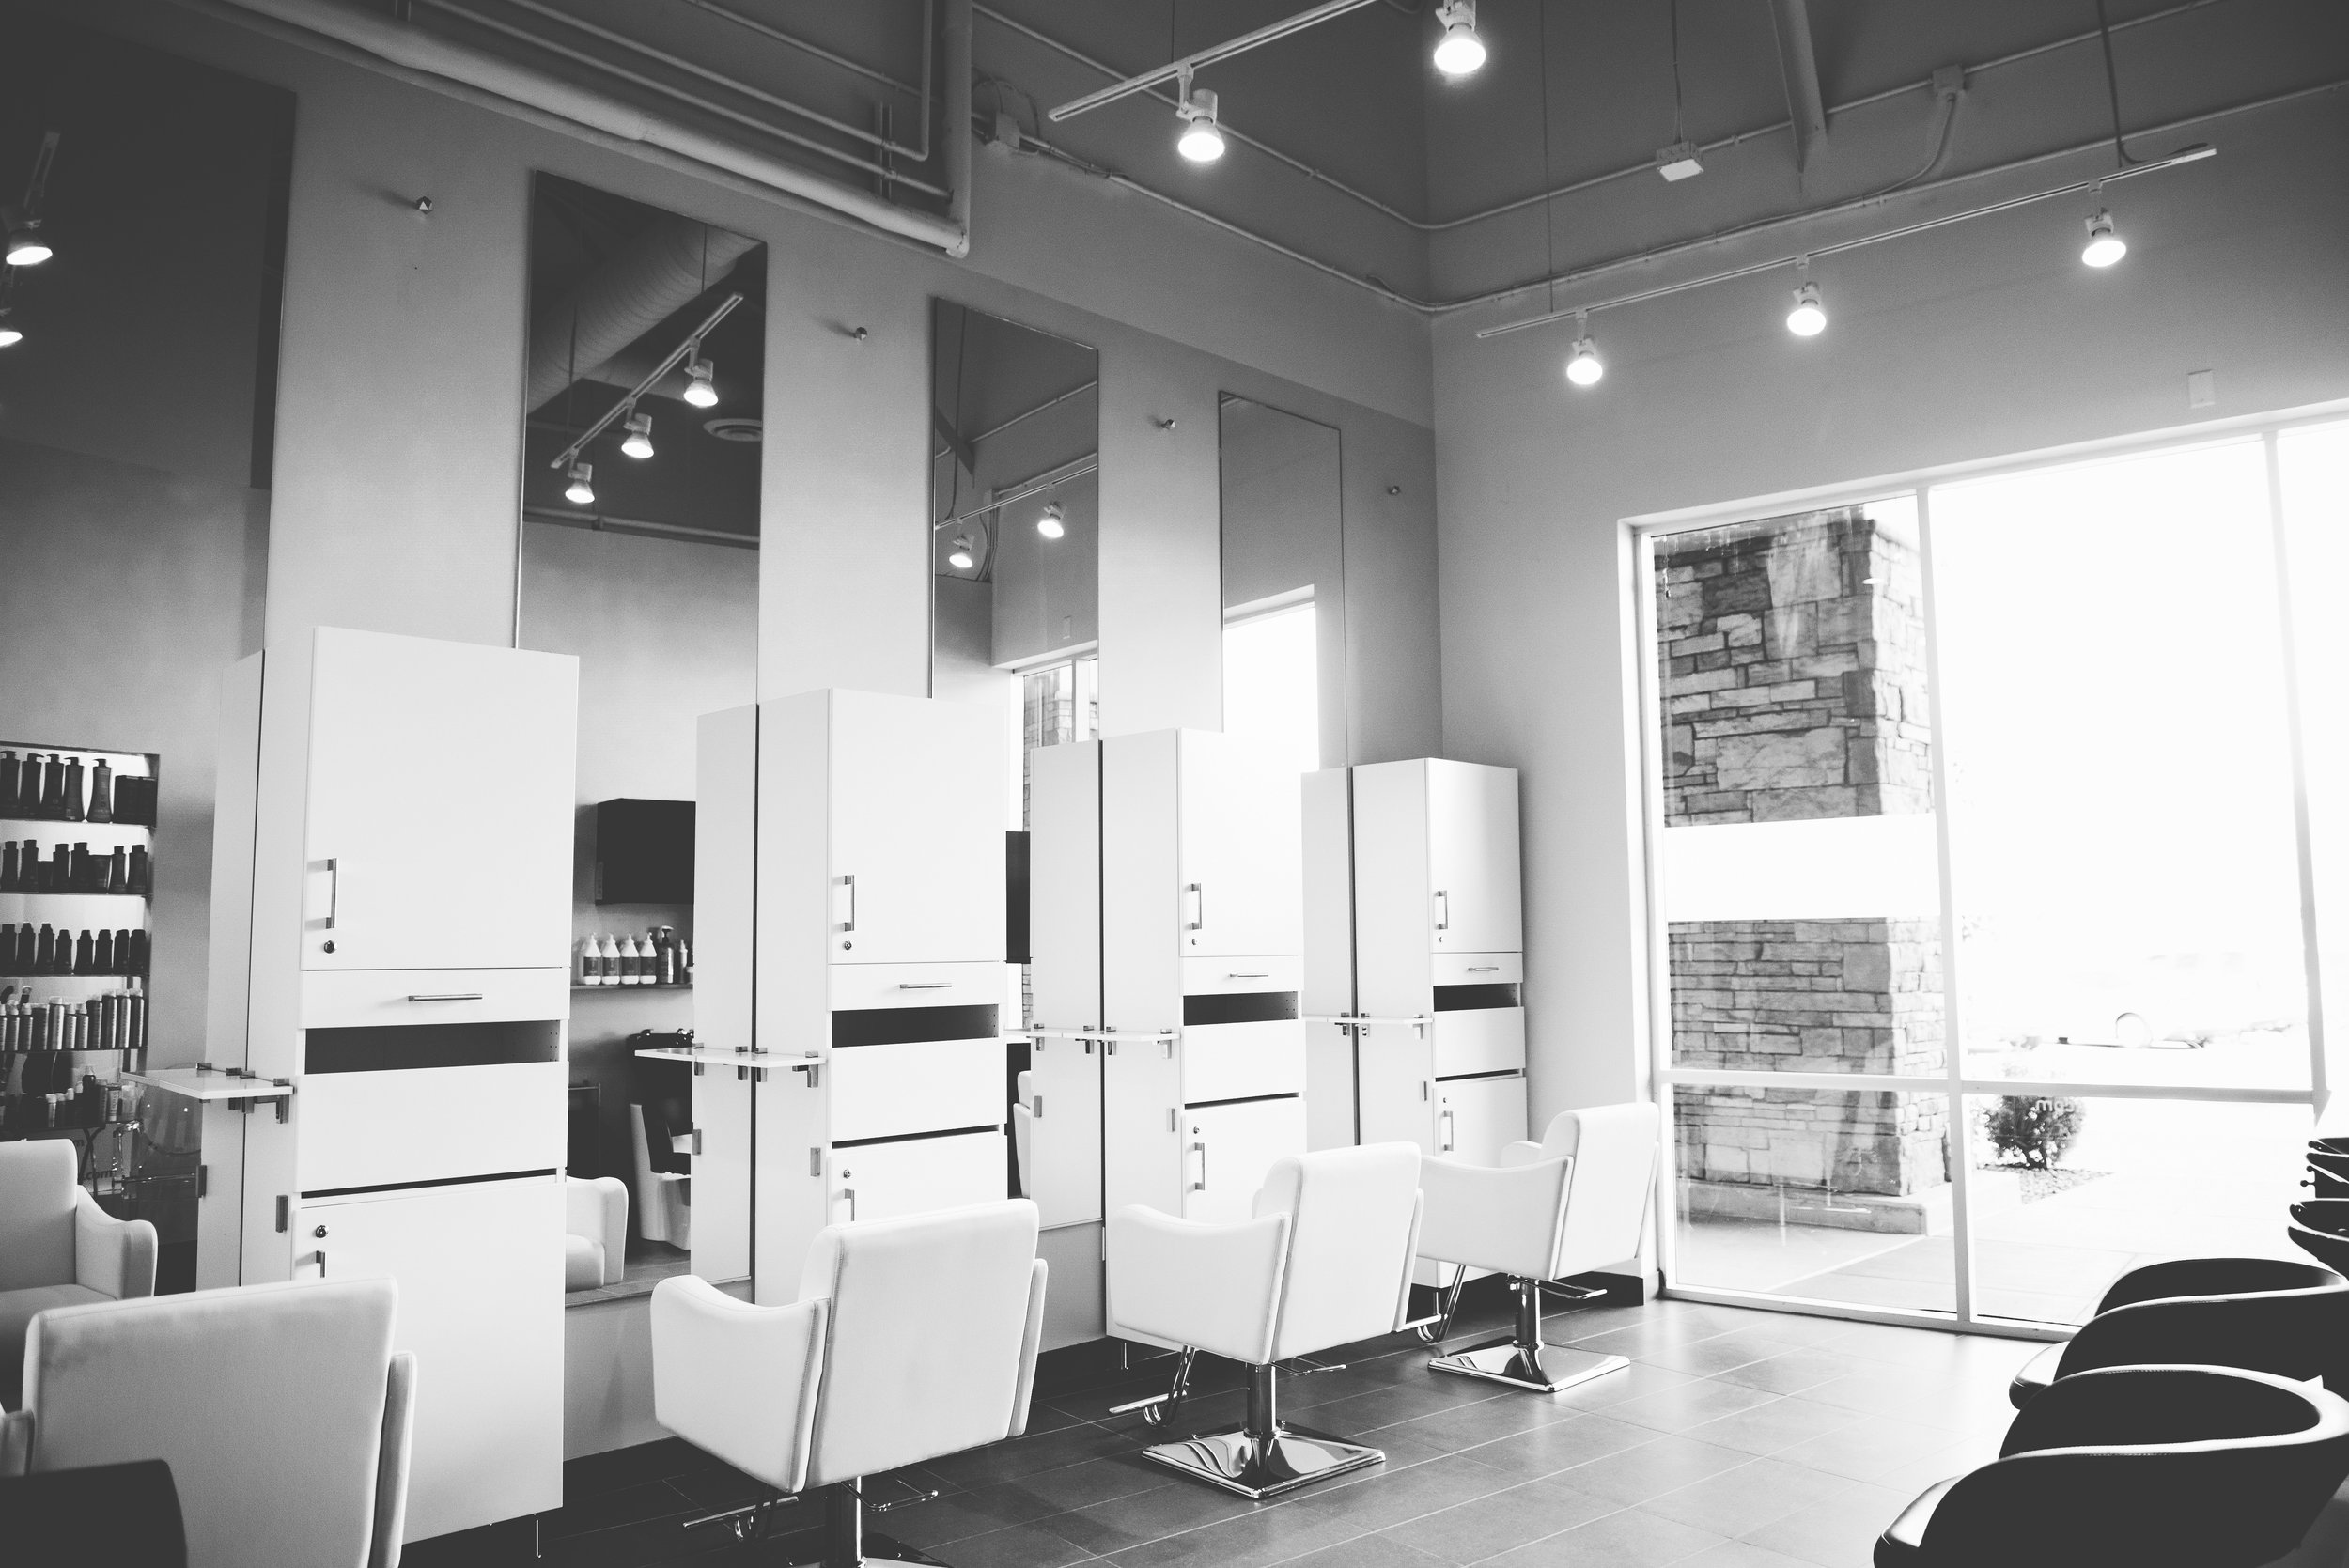 AboutTitanium Salon - At Titanium Salon, our number one priority is improving the spirit and well being of the individual, while also enhancing beauty through an experience. We specialize in certain product lines, are certified in different practices, and have an amazing team. Learn more about the stylists below.